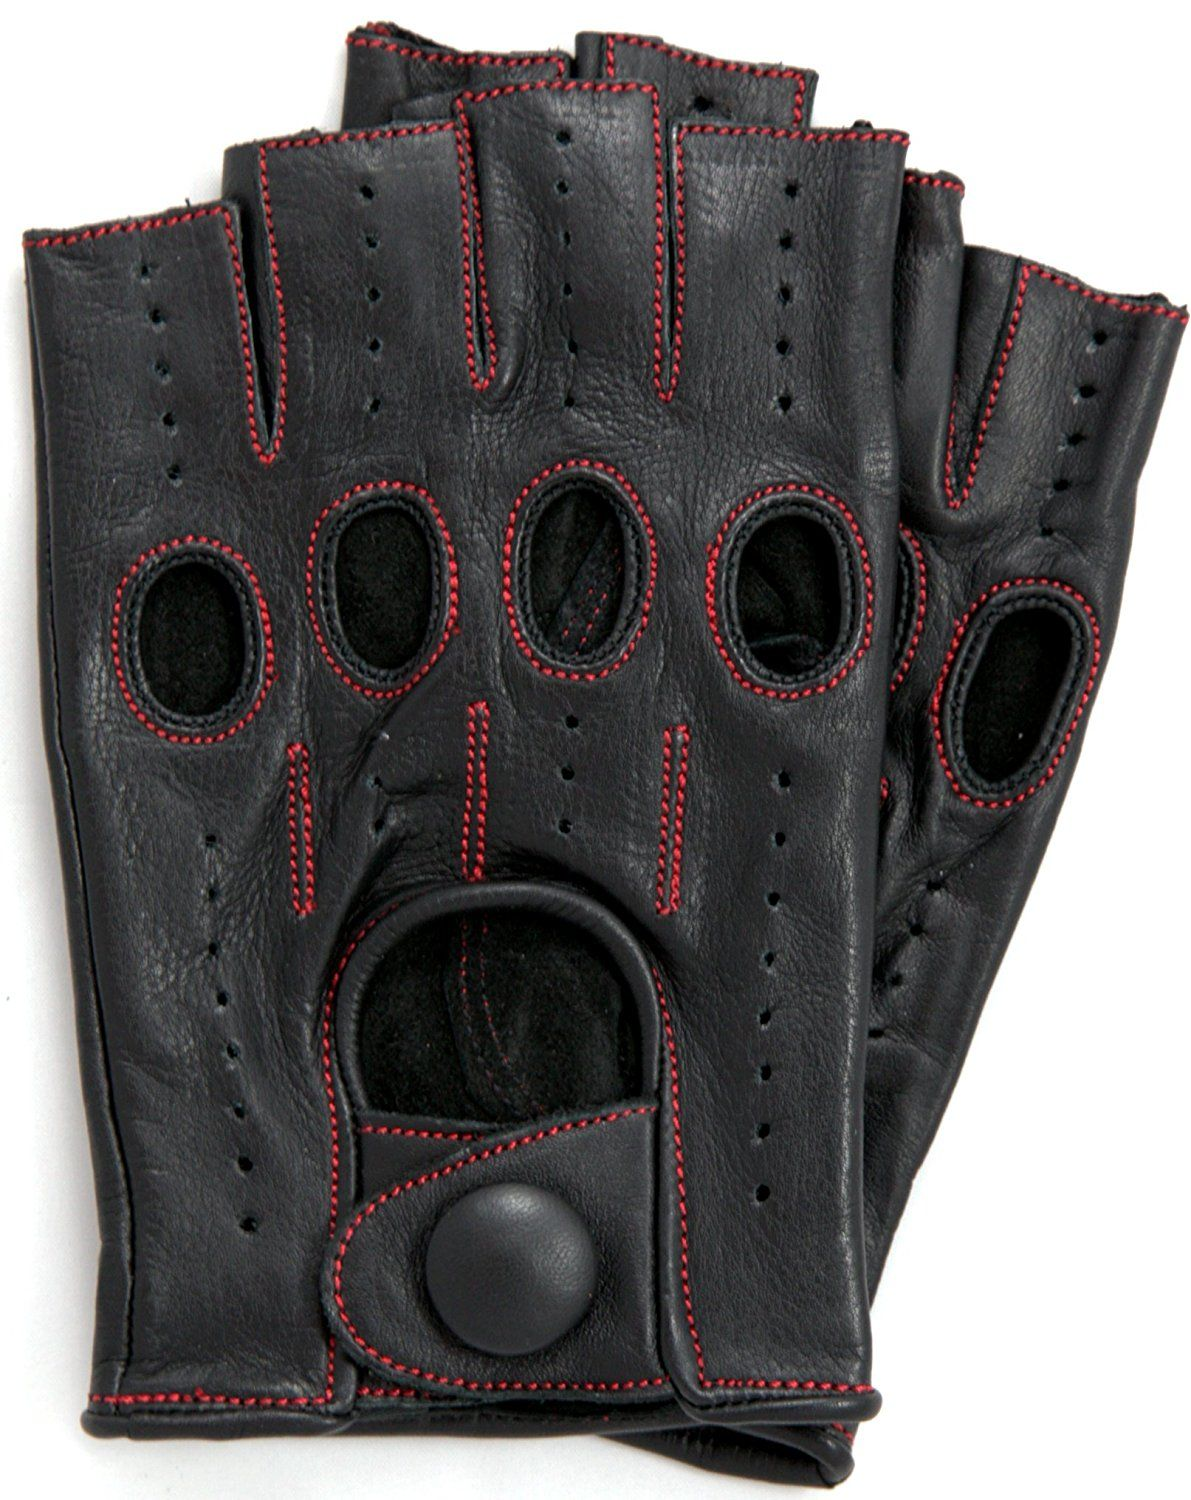 122921d948a708 Riparo Fingerless Driving Gloves Black/Red thread | Stuff to Buy ...